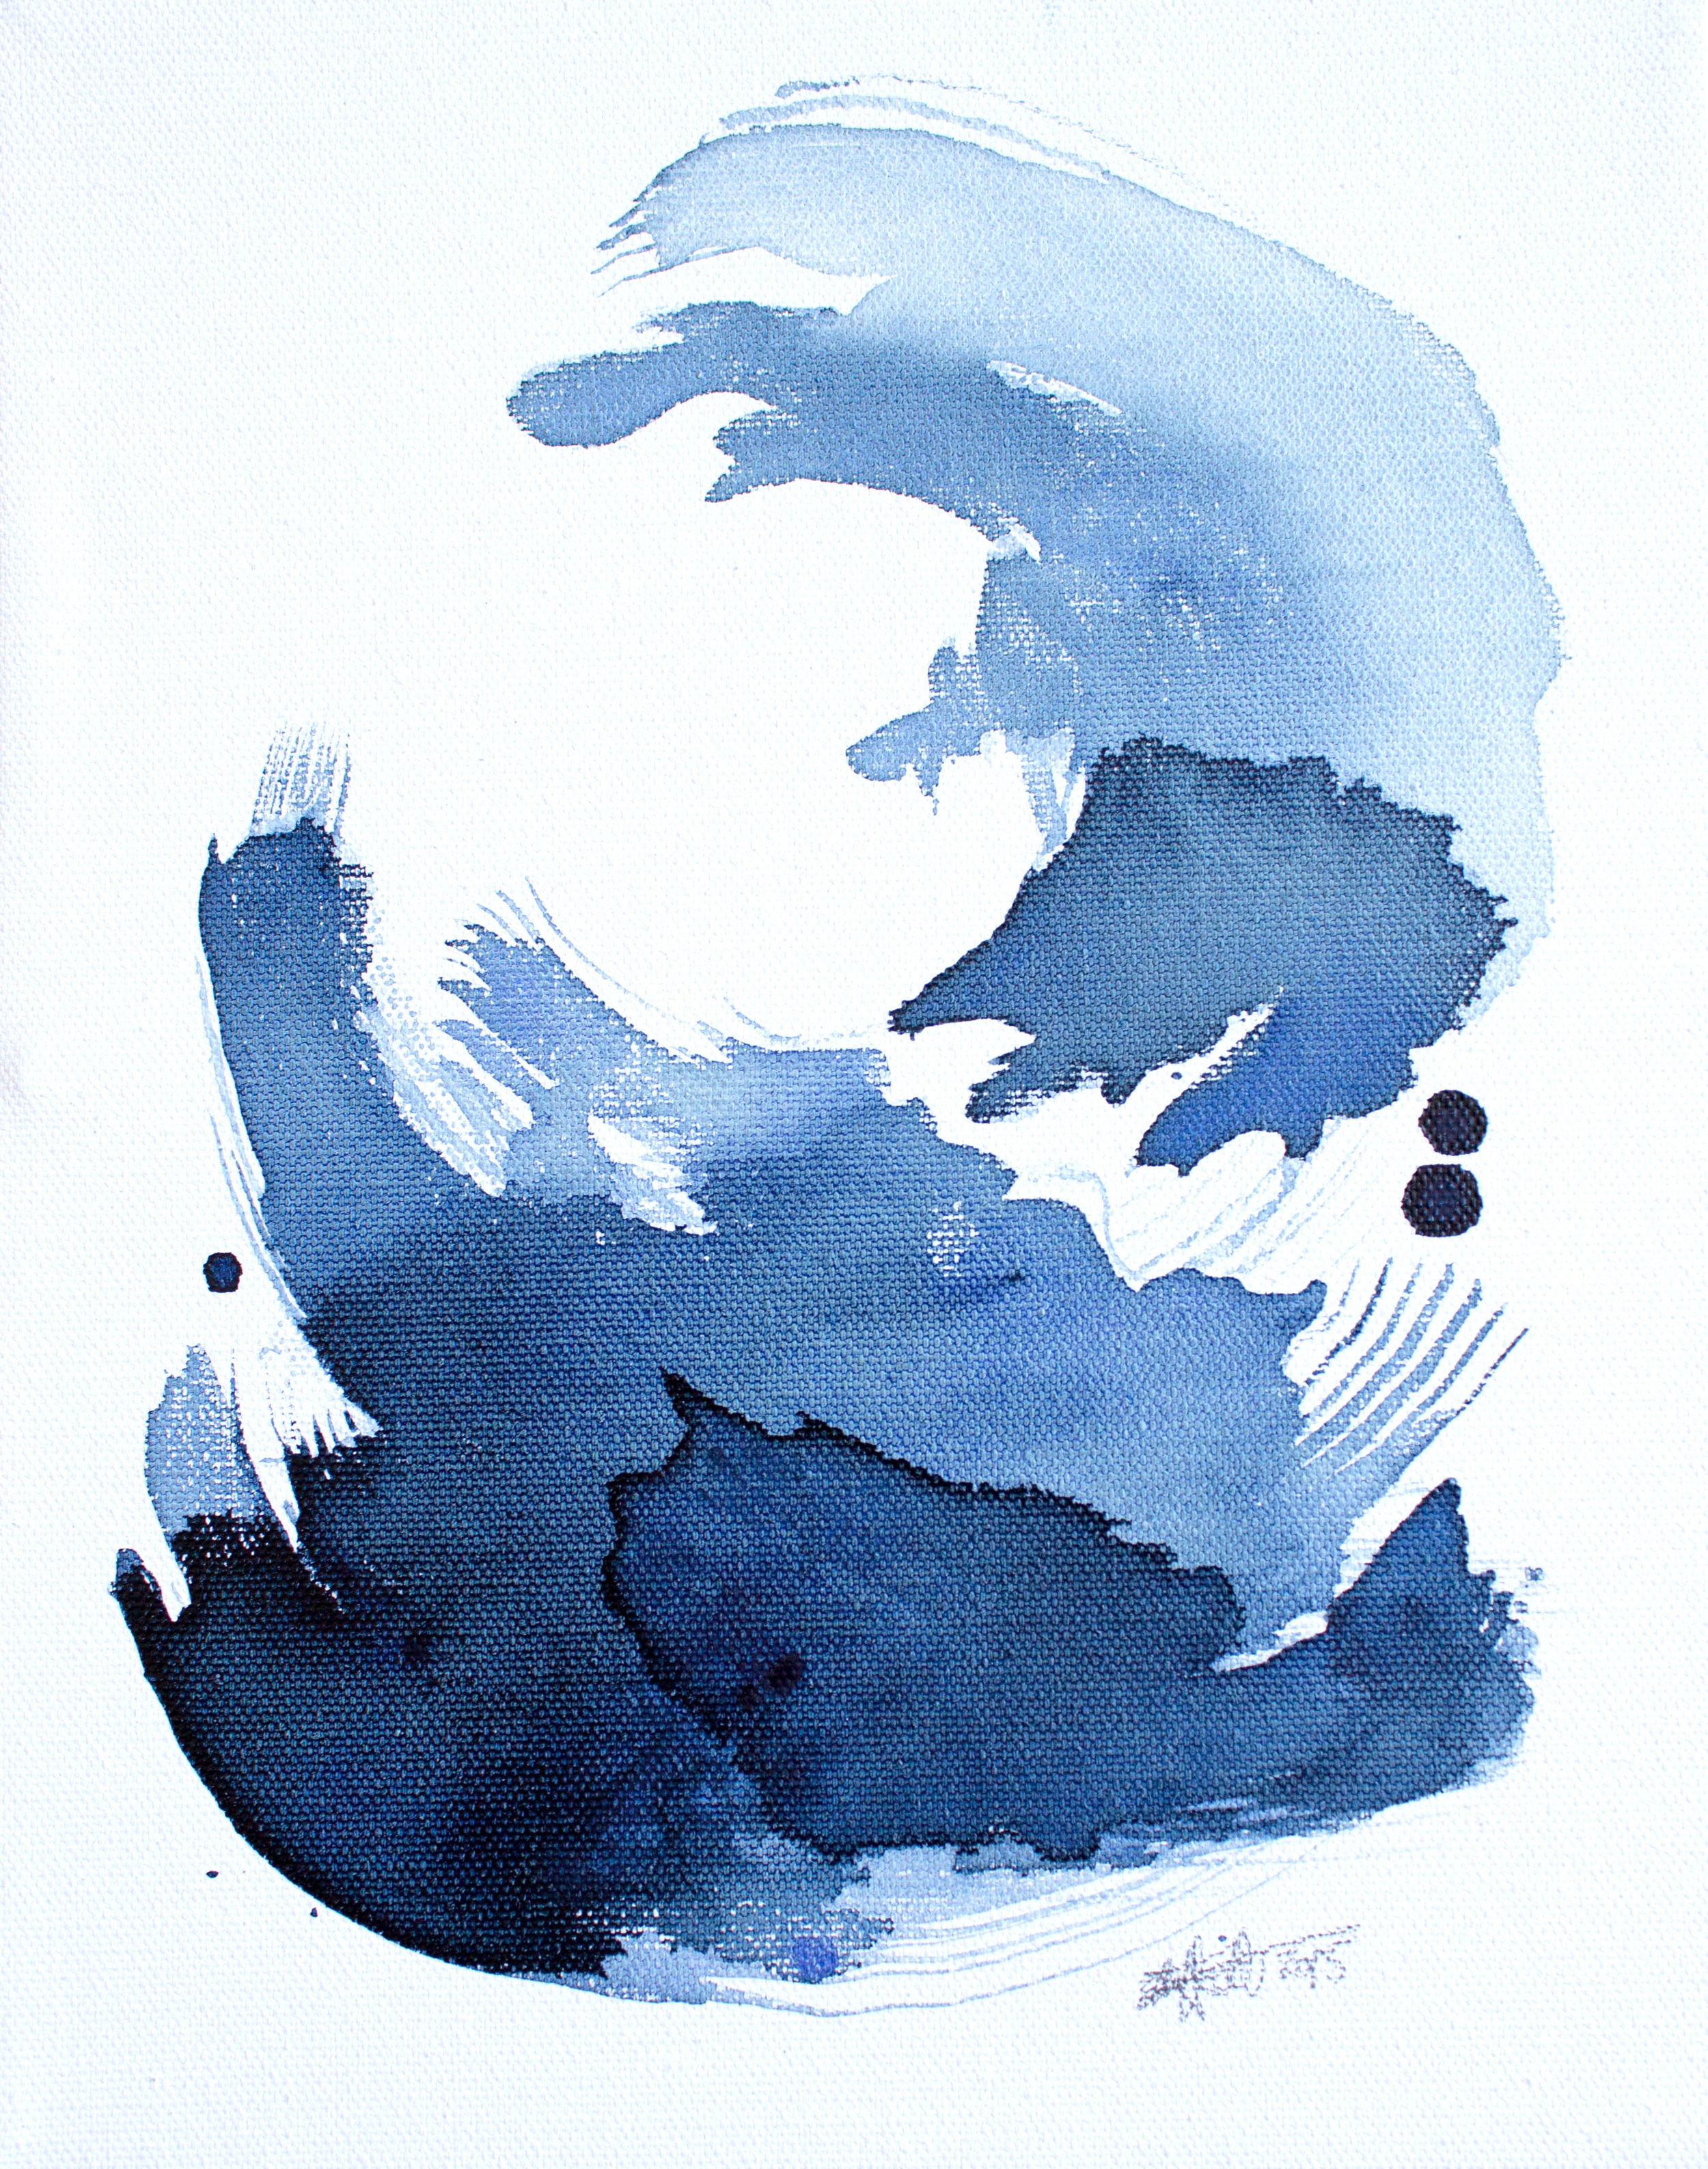 EH Sherman Watercolor Abstracts - Currents